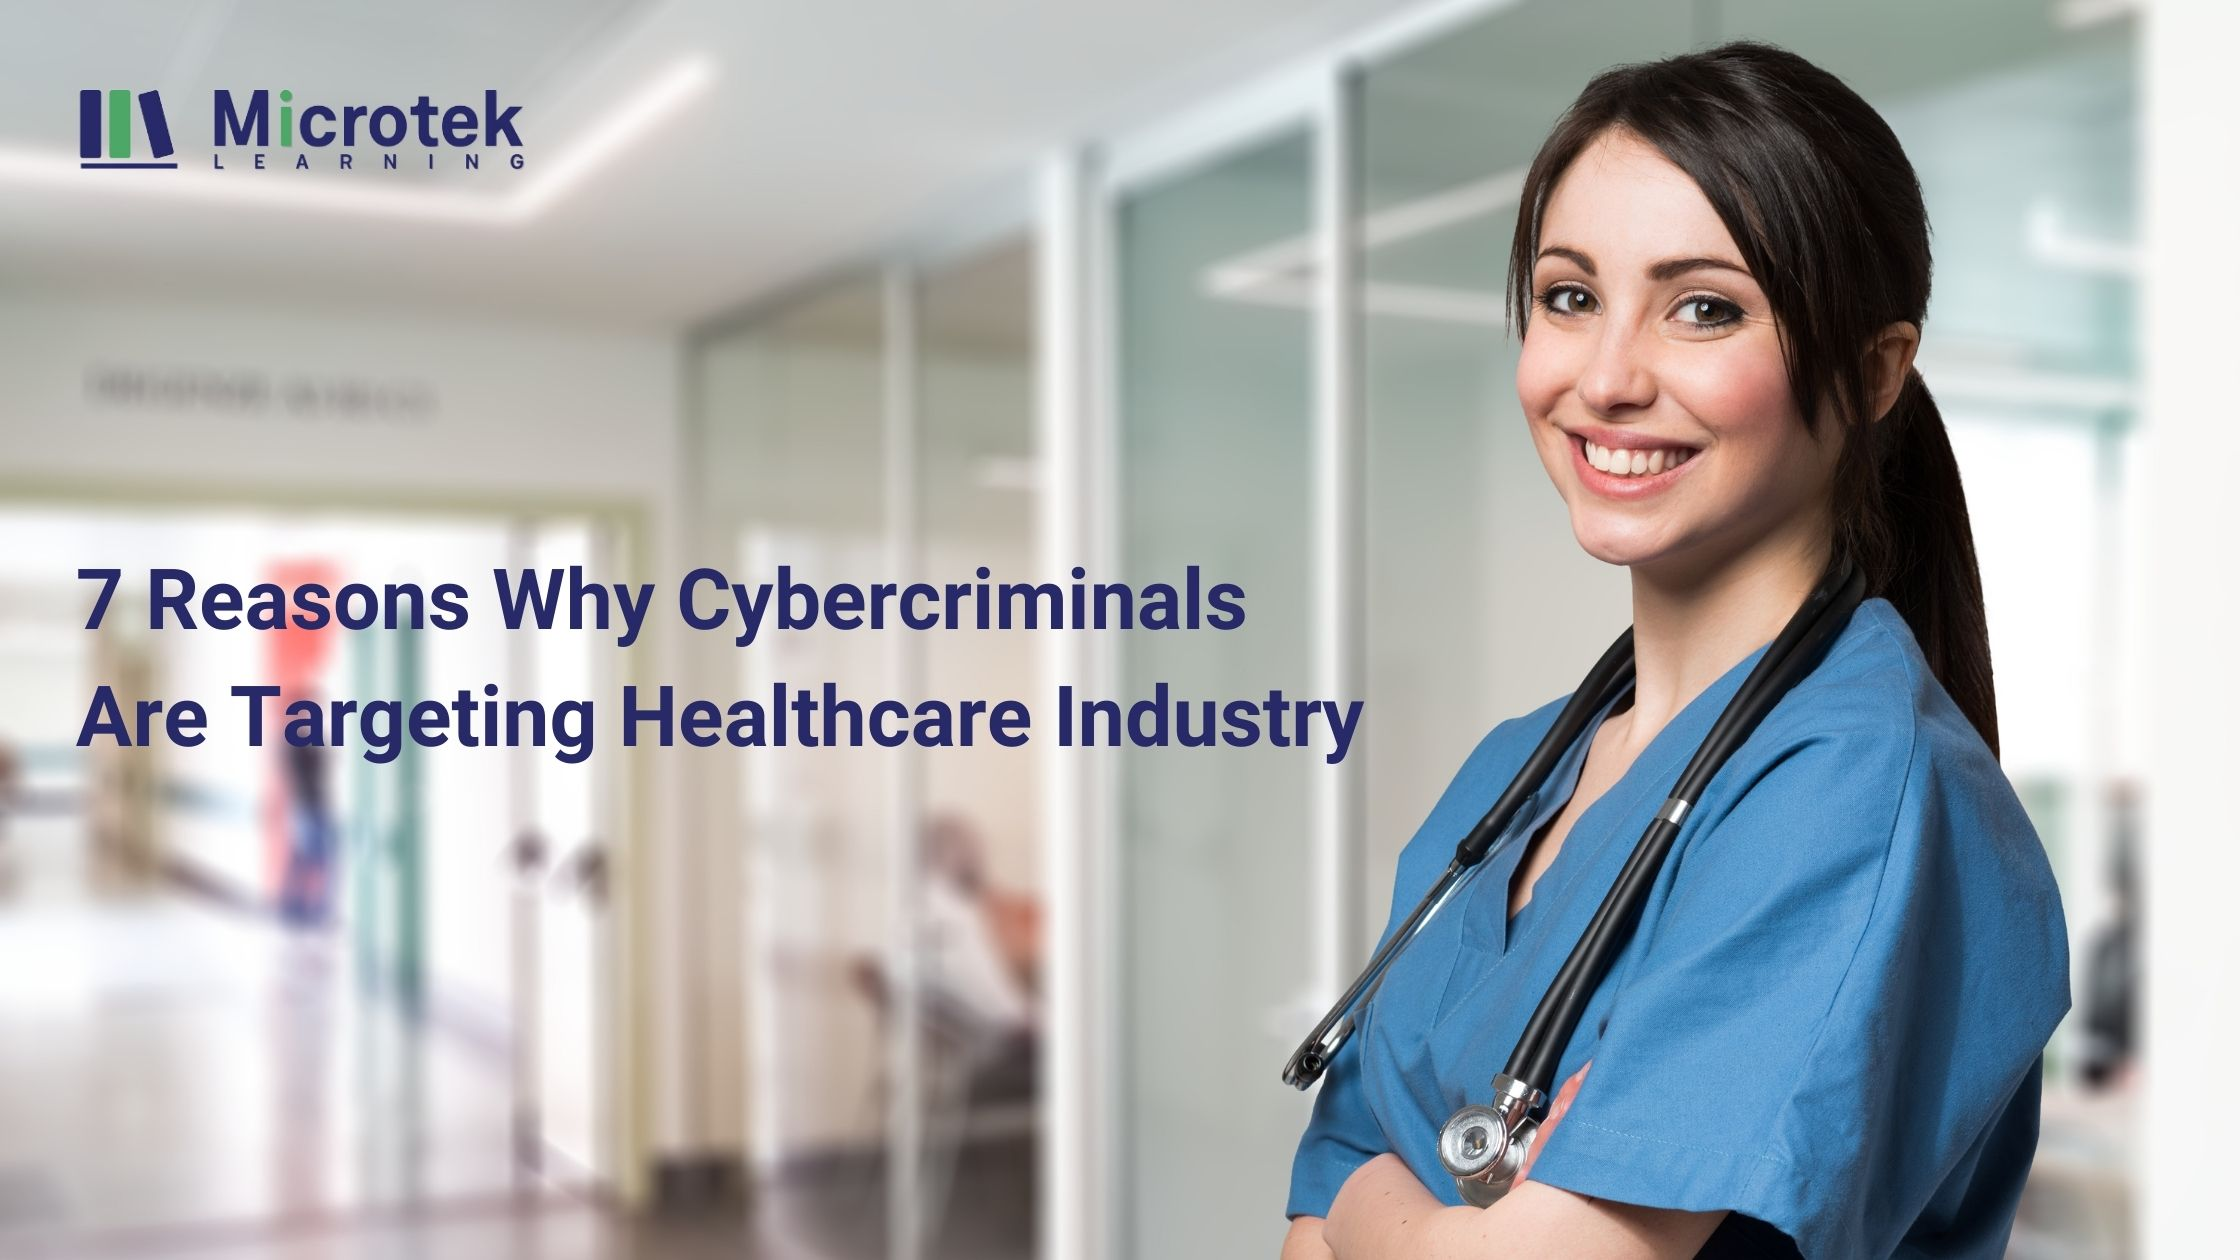 Why Cybercriminals Are Targeting Healthcare Industry